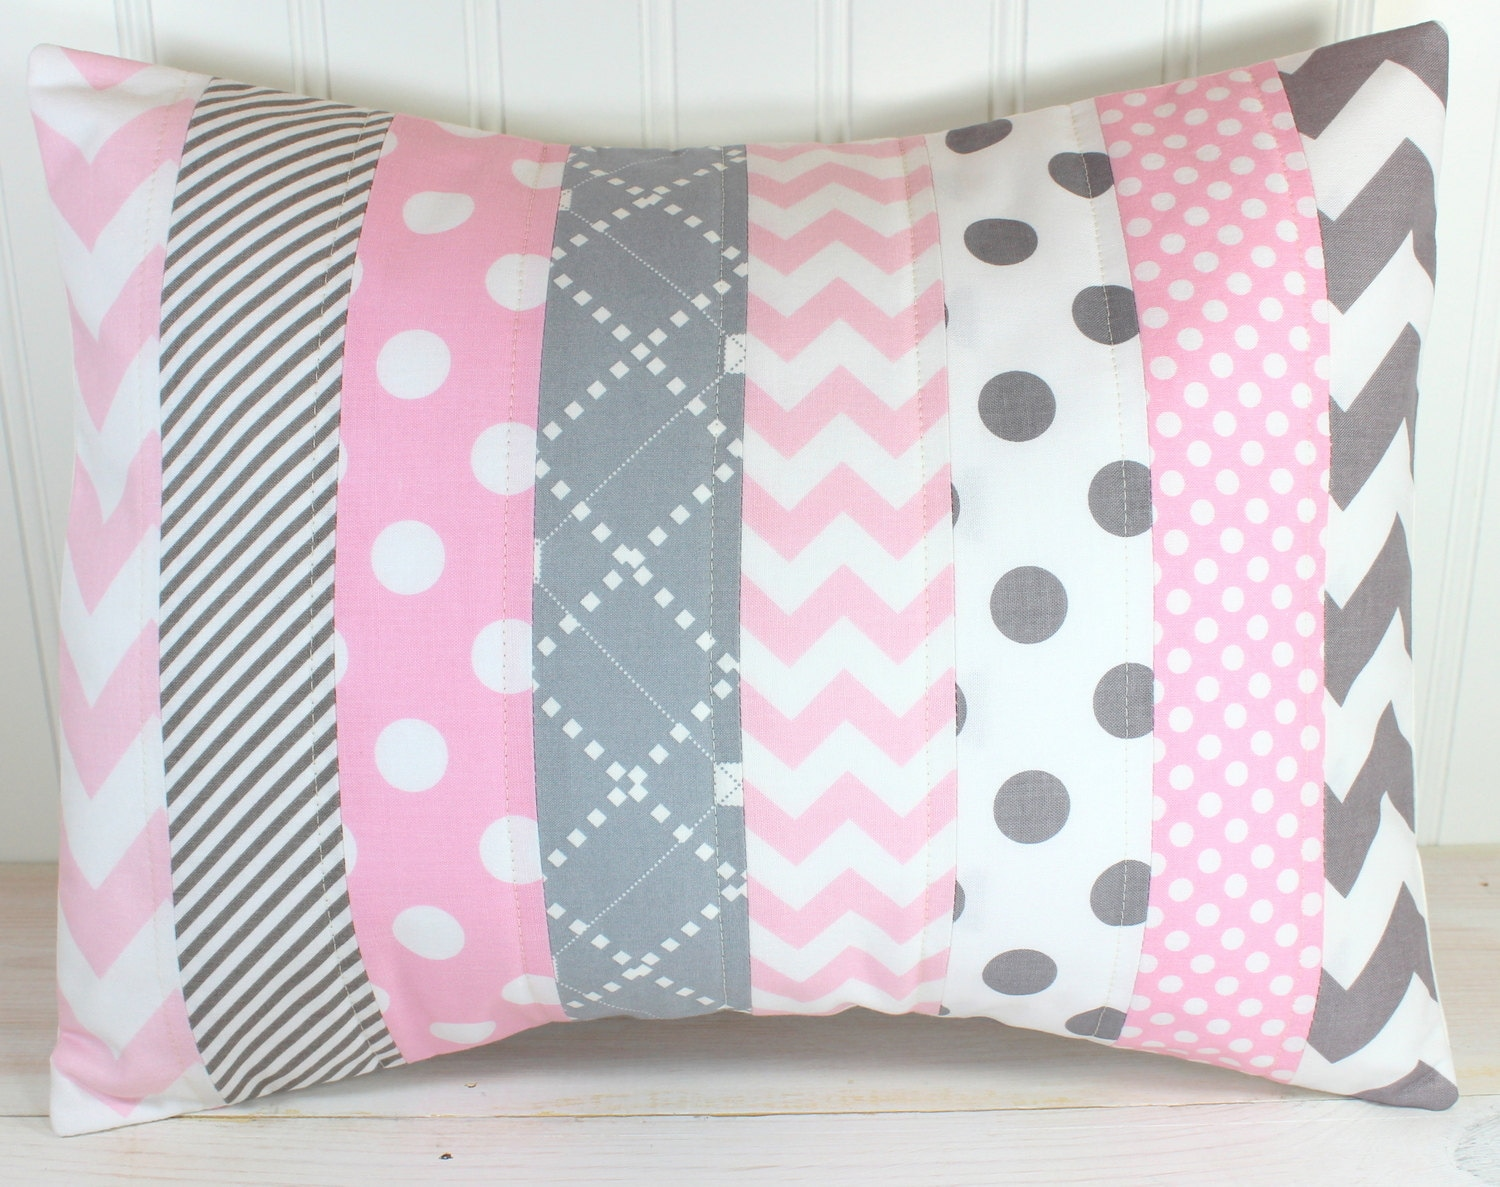 Decorative Pillows For Crib : Throw Pillow Cover Nursery Cushion Cover Nursery Decor Crib